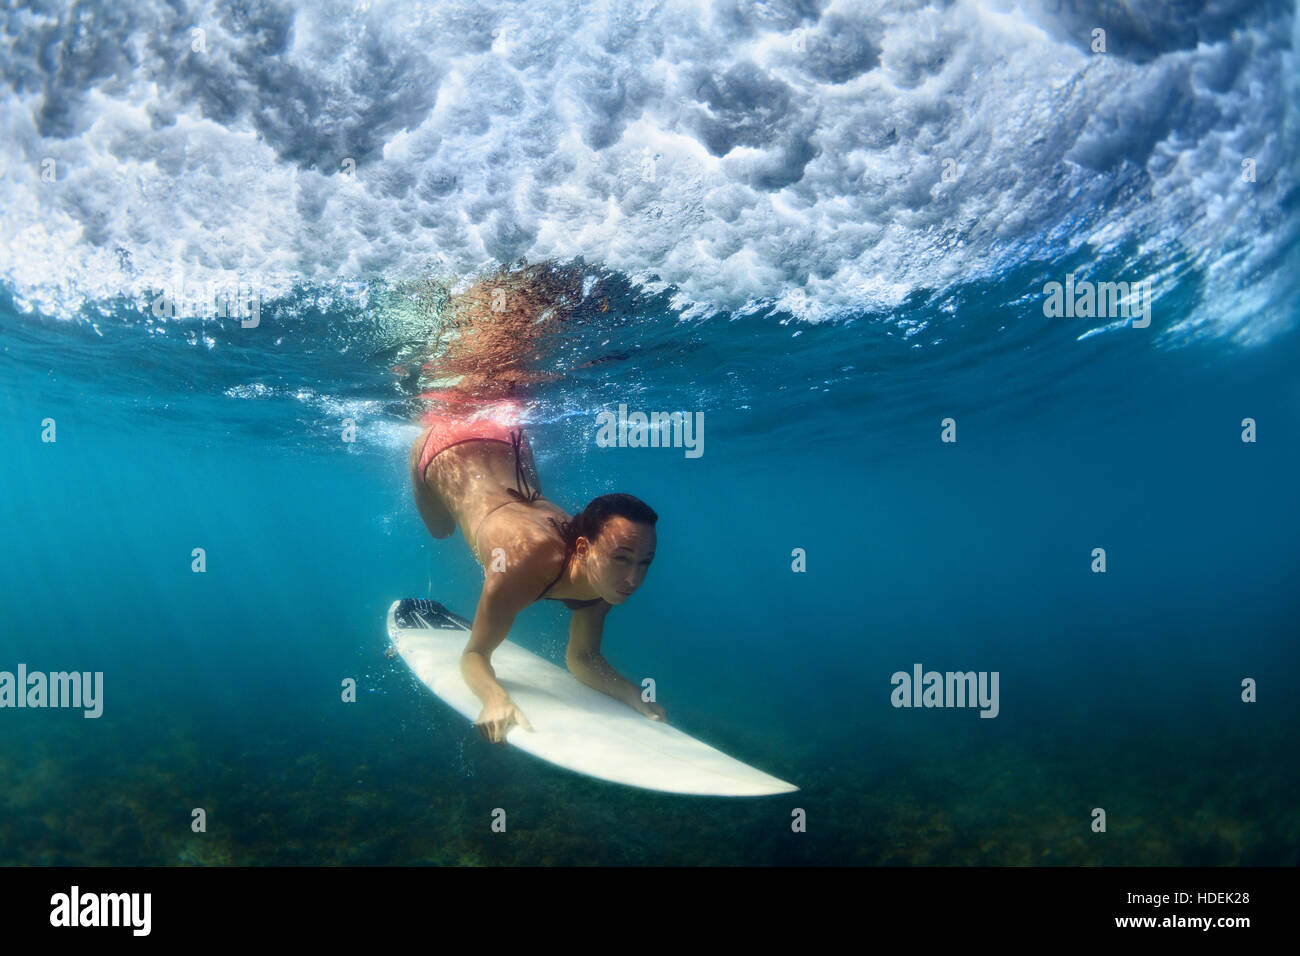 Girl in bikini in surfing action. Surfer with surf board dive underwater under breaking ocean wave Extreme water - Stock Image